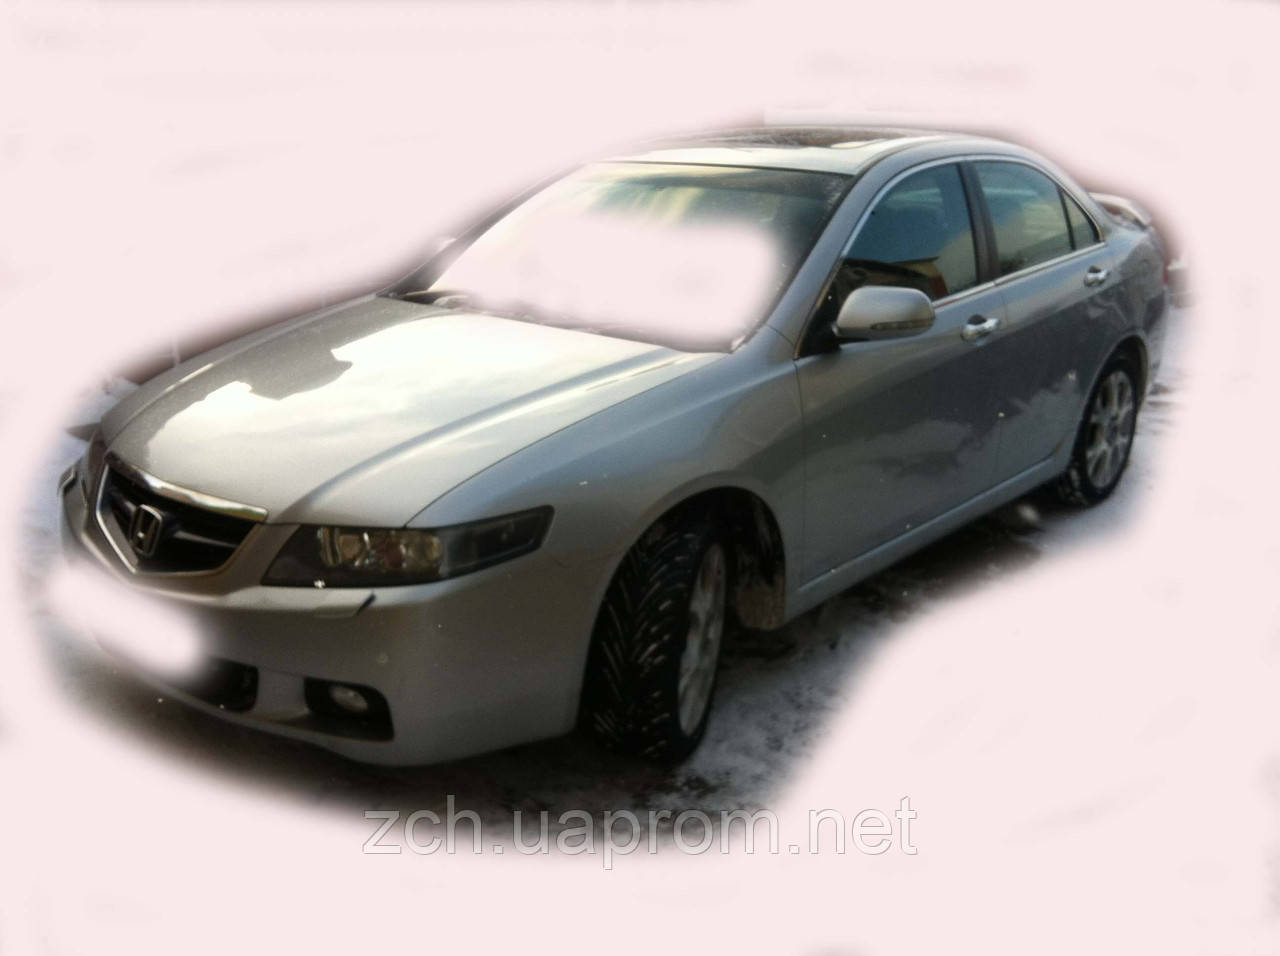 Радиатор кондиционера 2.0 и 2.4 Honda Accord